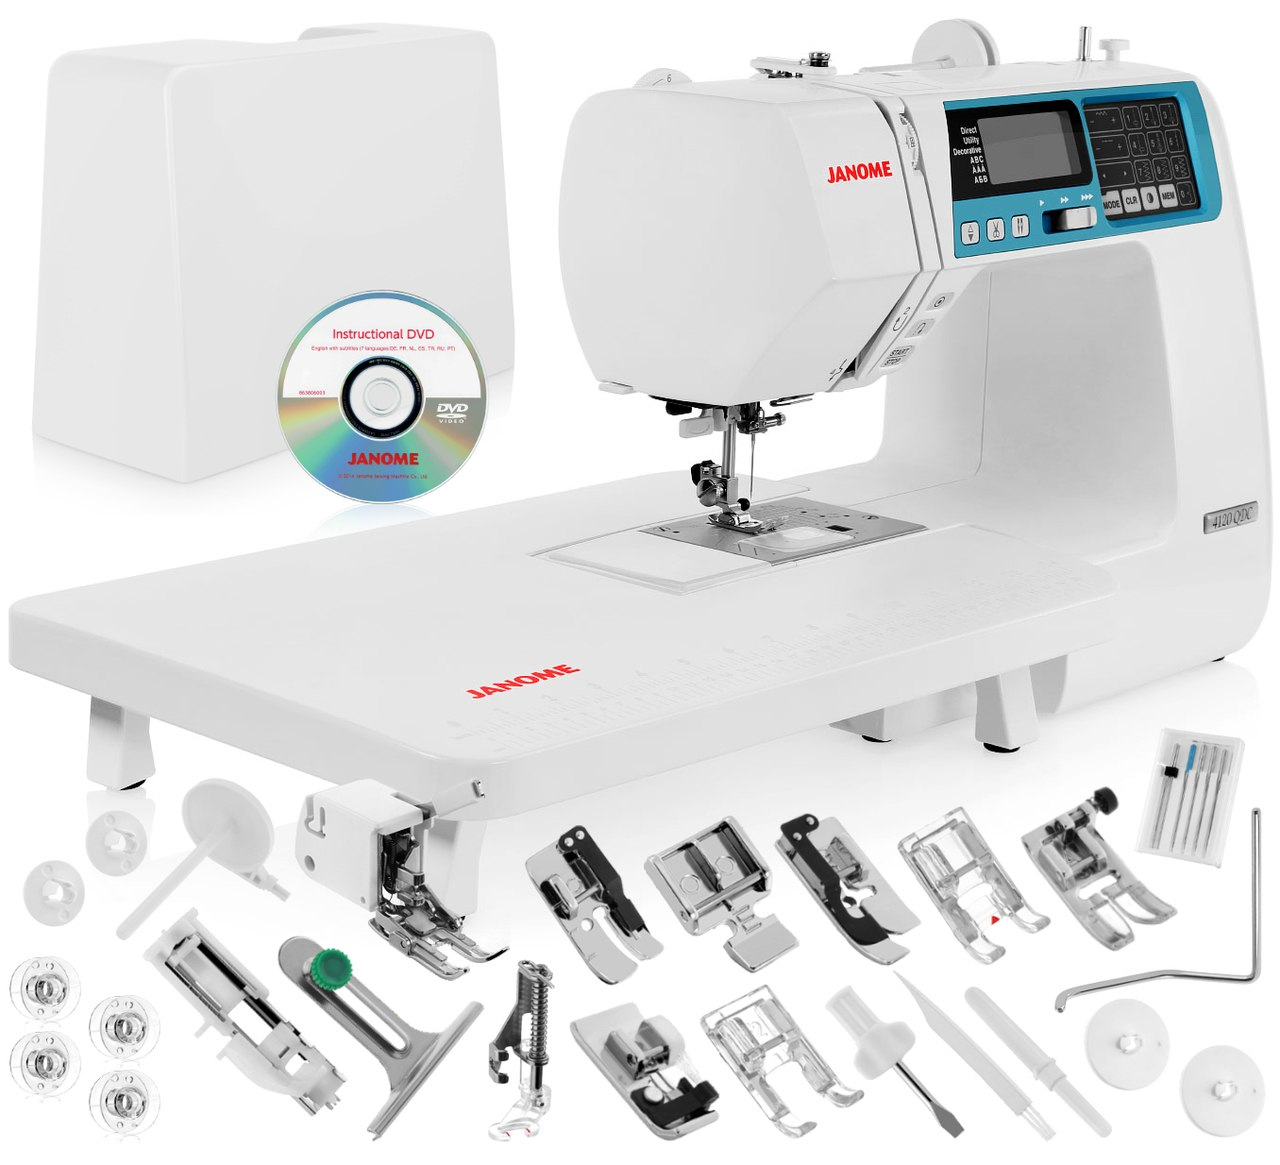 Janome 4120QDC Computerized Sewing Machine w/ Hard Case + Extension Table